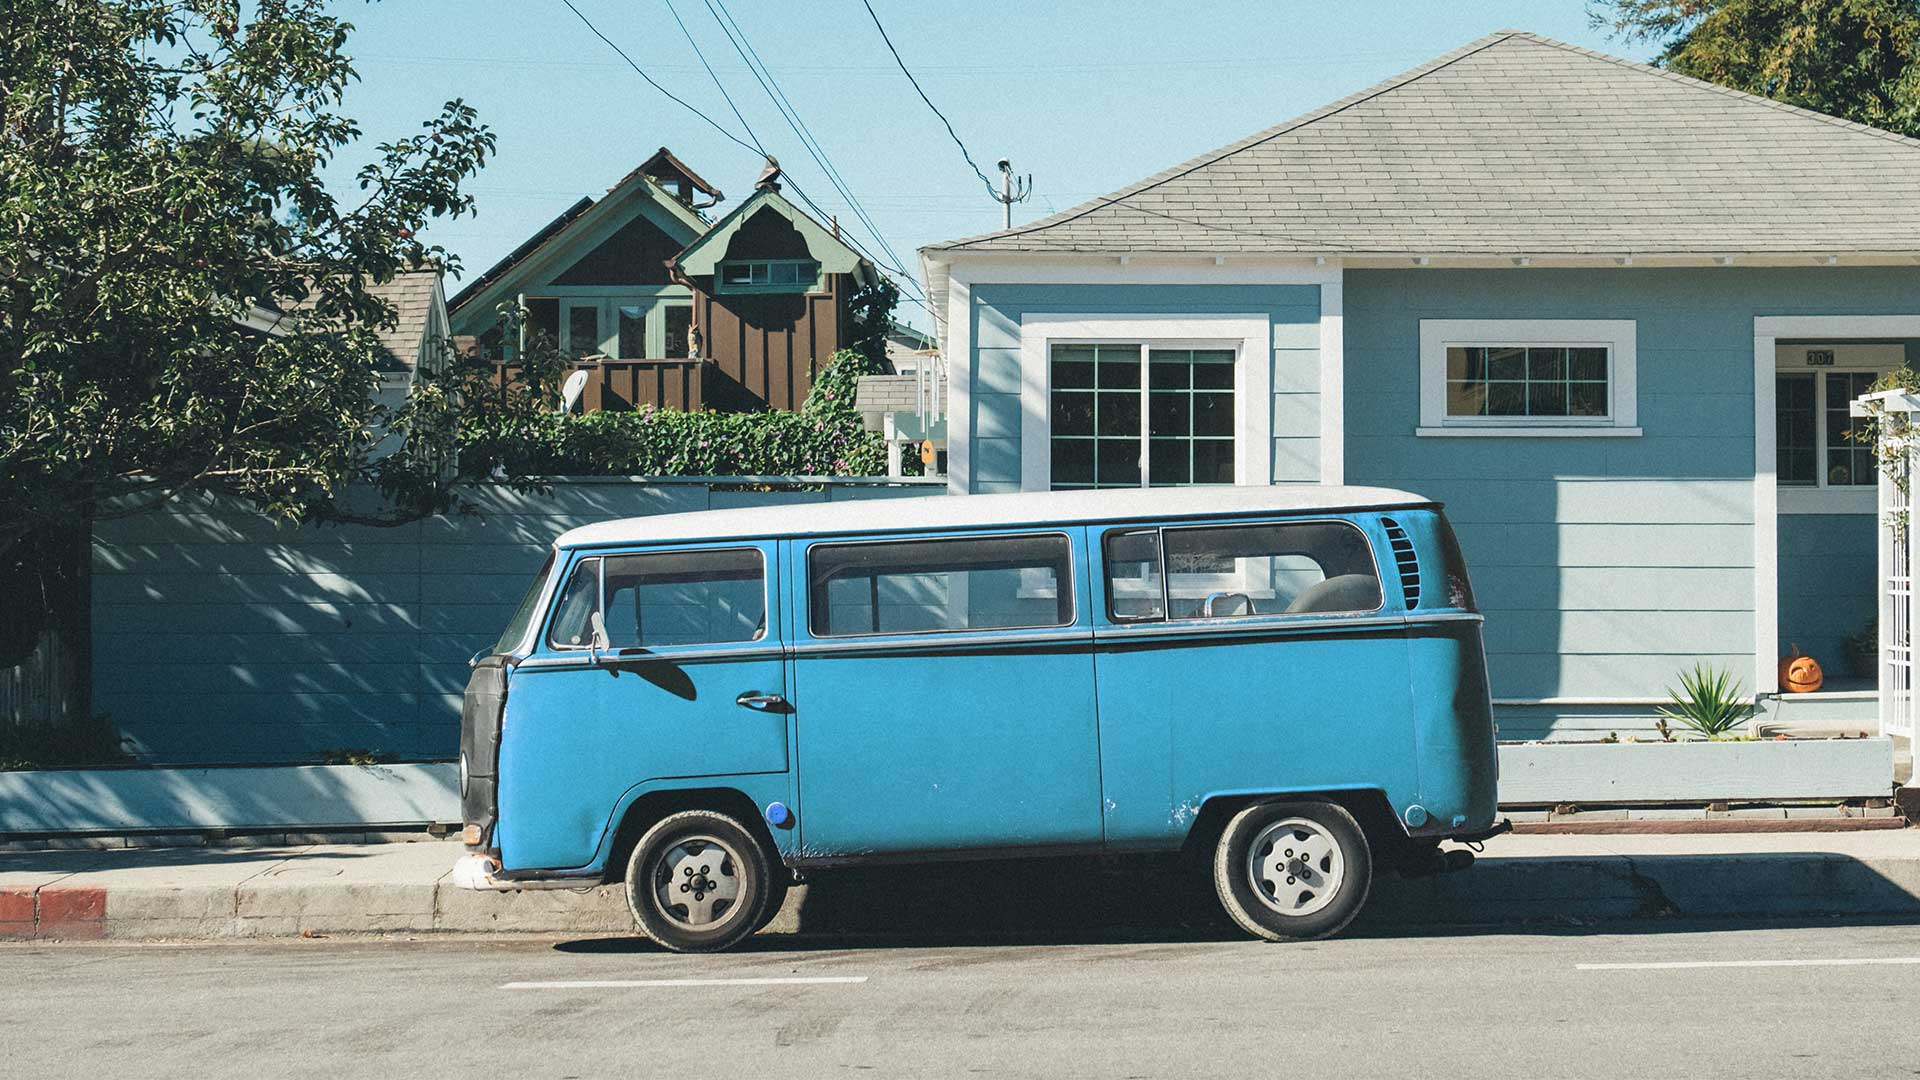 VW campervan cyan colorized with Imerge Pro color adjustment effect